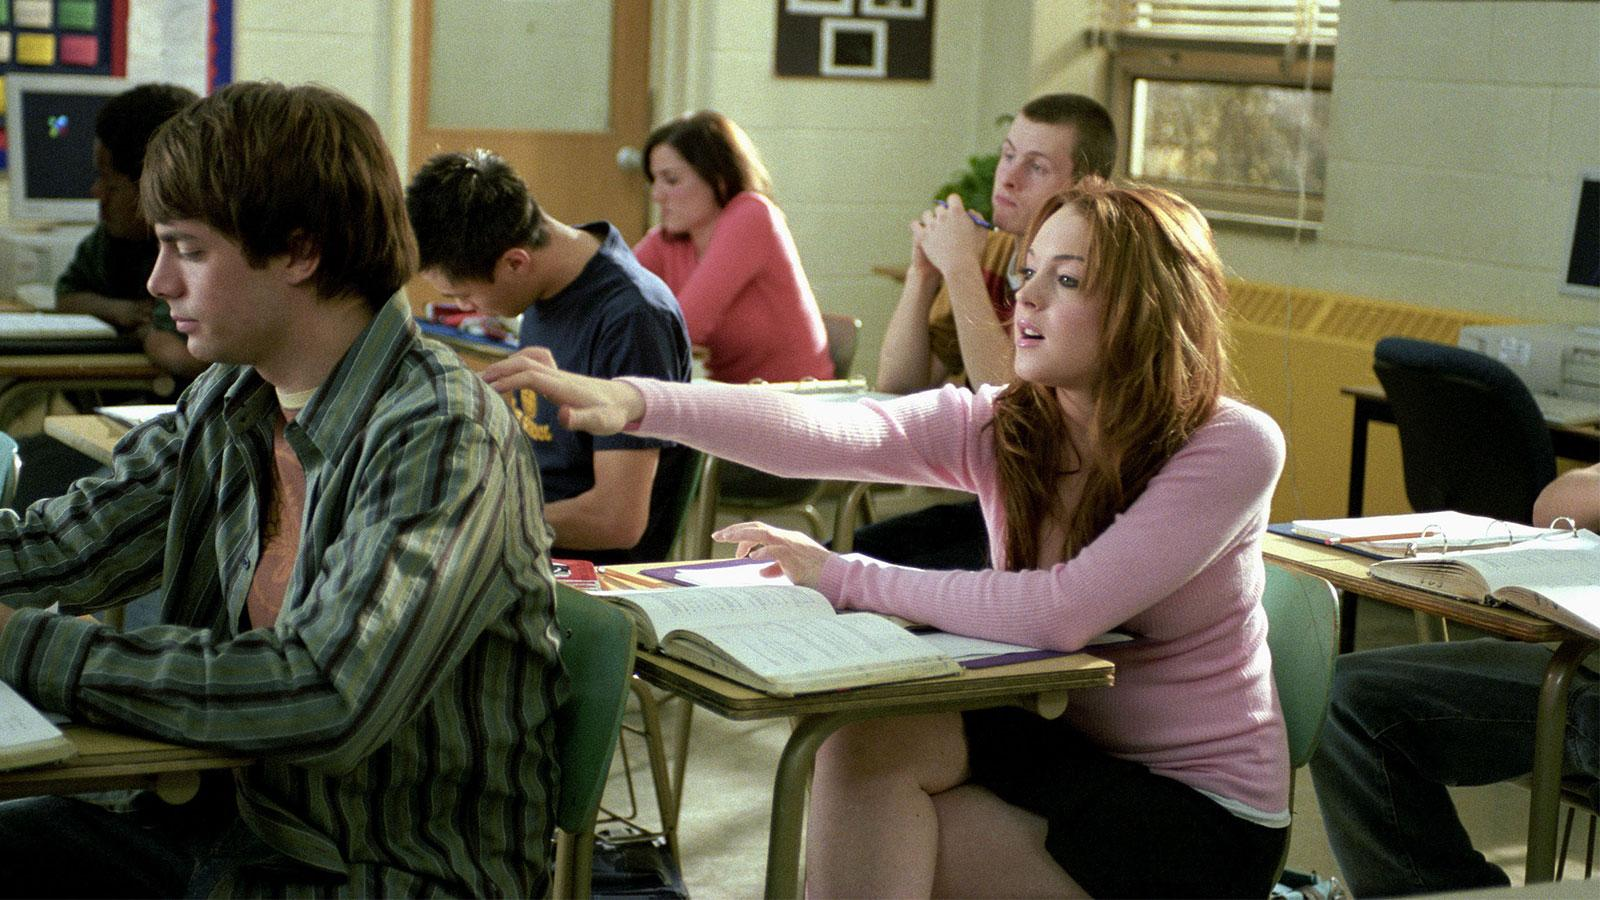 On Wednesdays, We Drink Pink: 'Mean Girls' Wine from Lead Actor, Leading Sonoma Winemaker